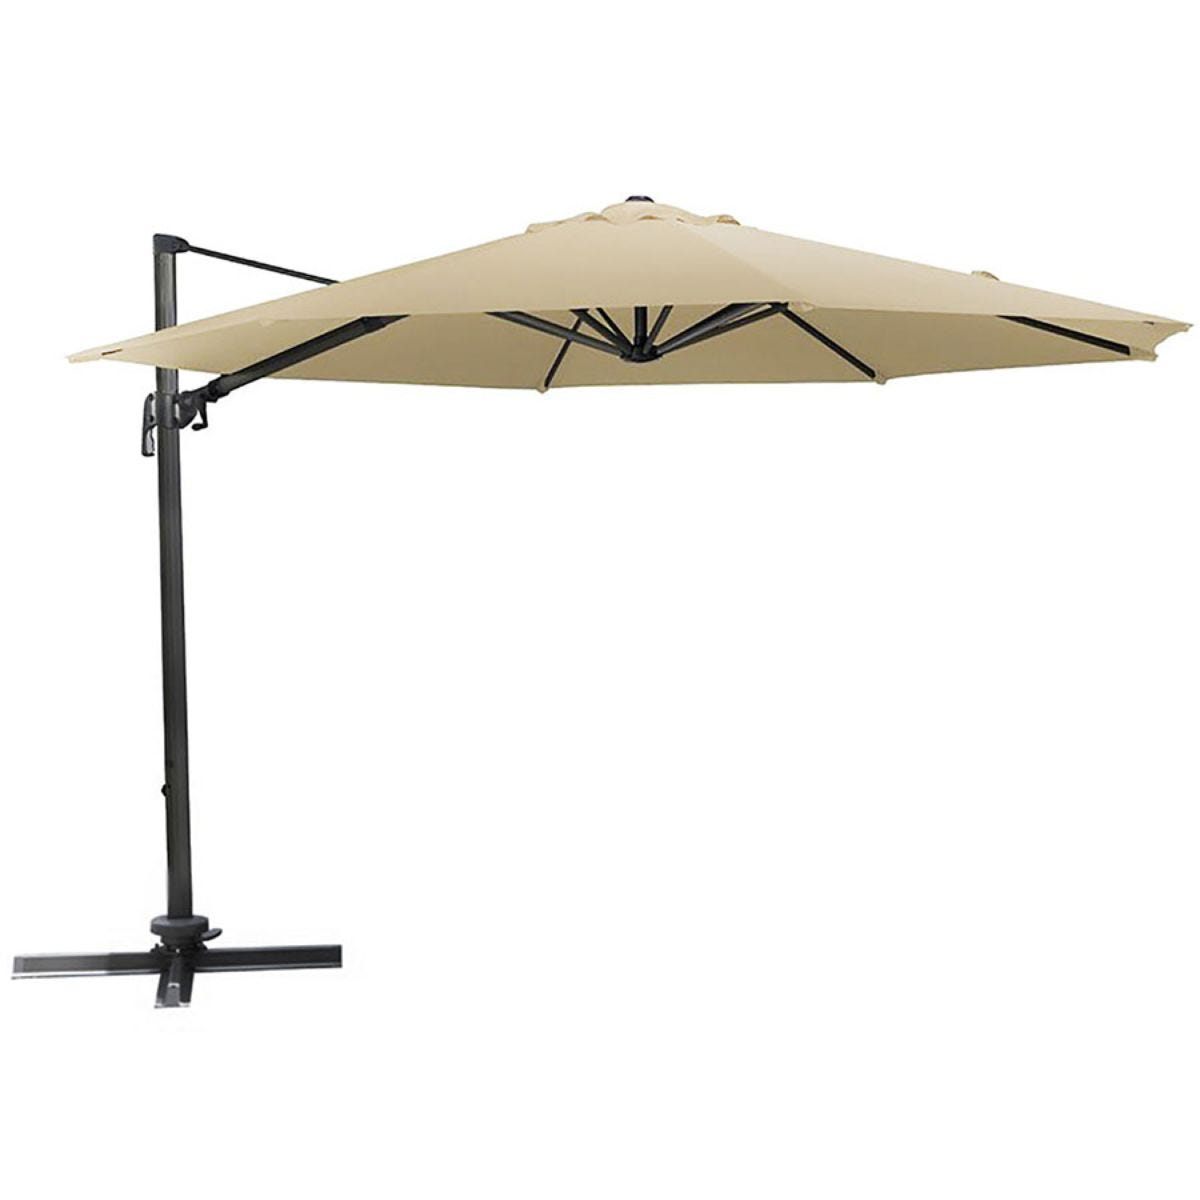 Charles Bentley Extra Large Round Garden Parasol (base not included) - Beige